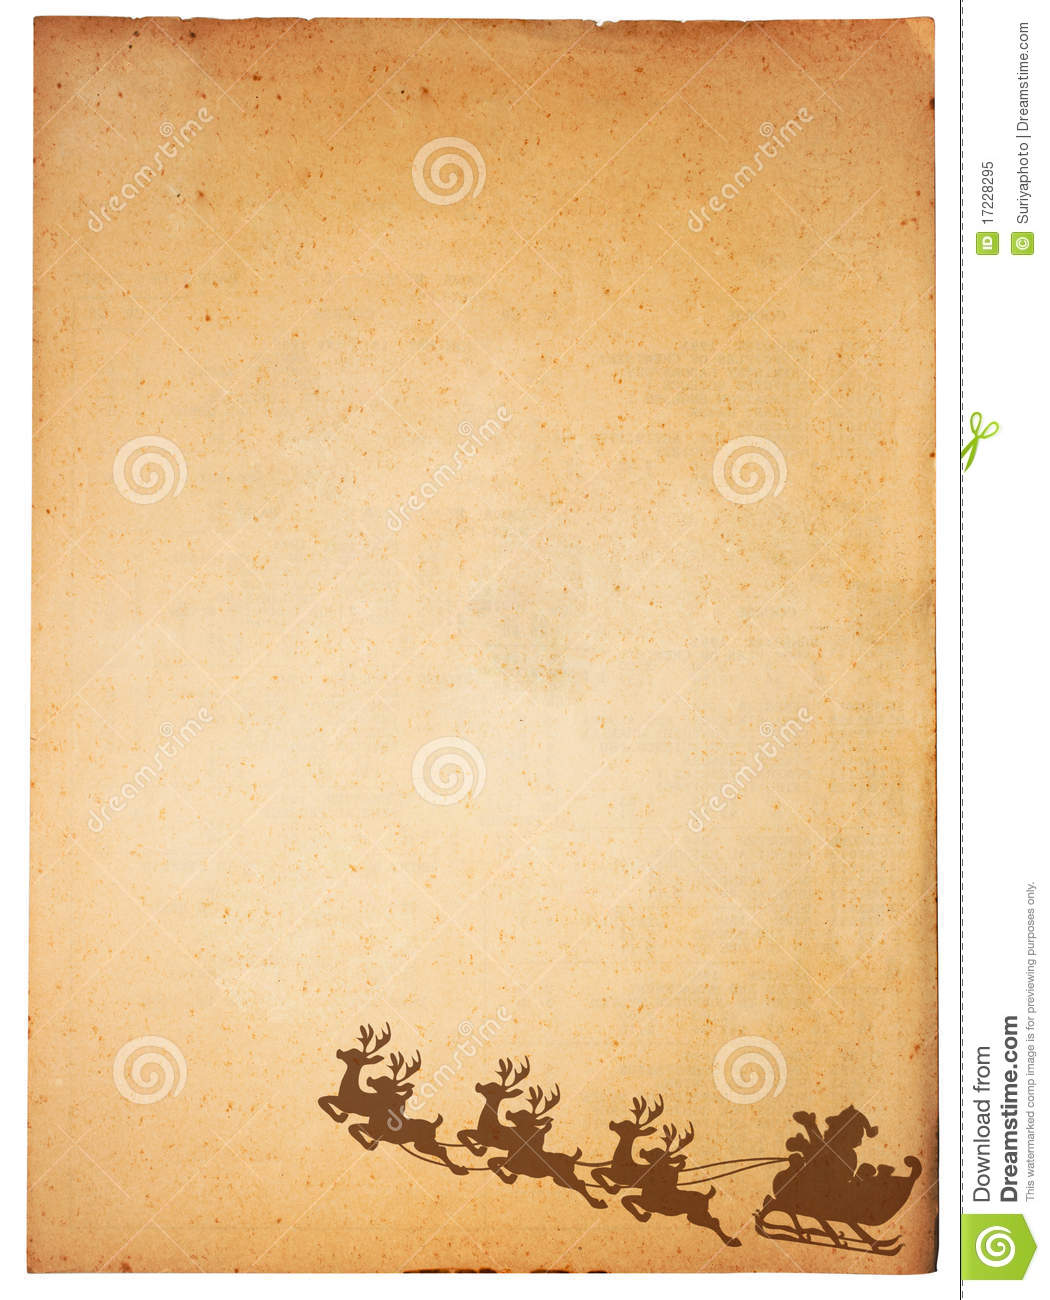 Vintage Paper And Santa Claus Royalty Free Stock Photo